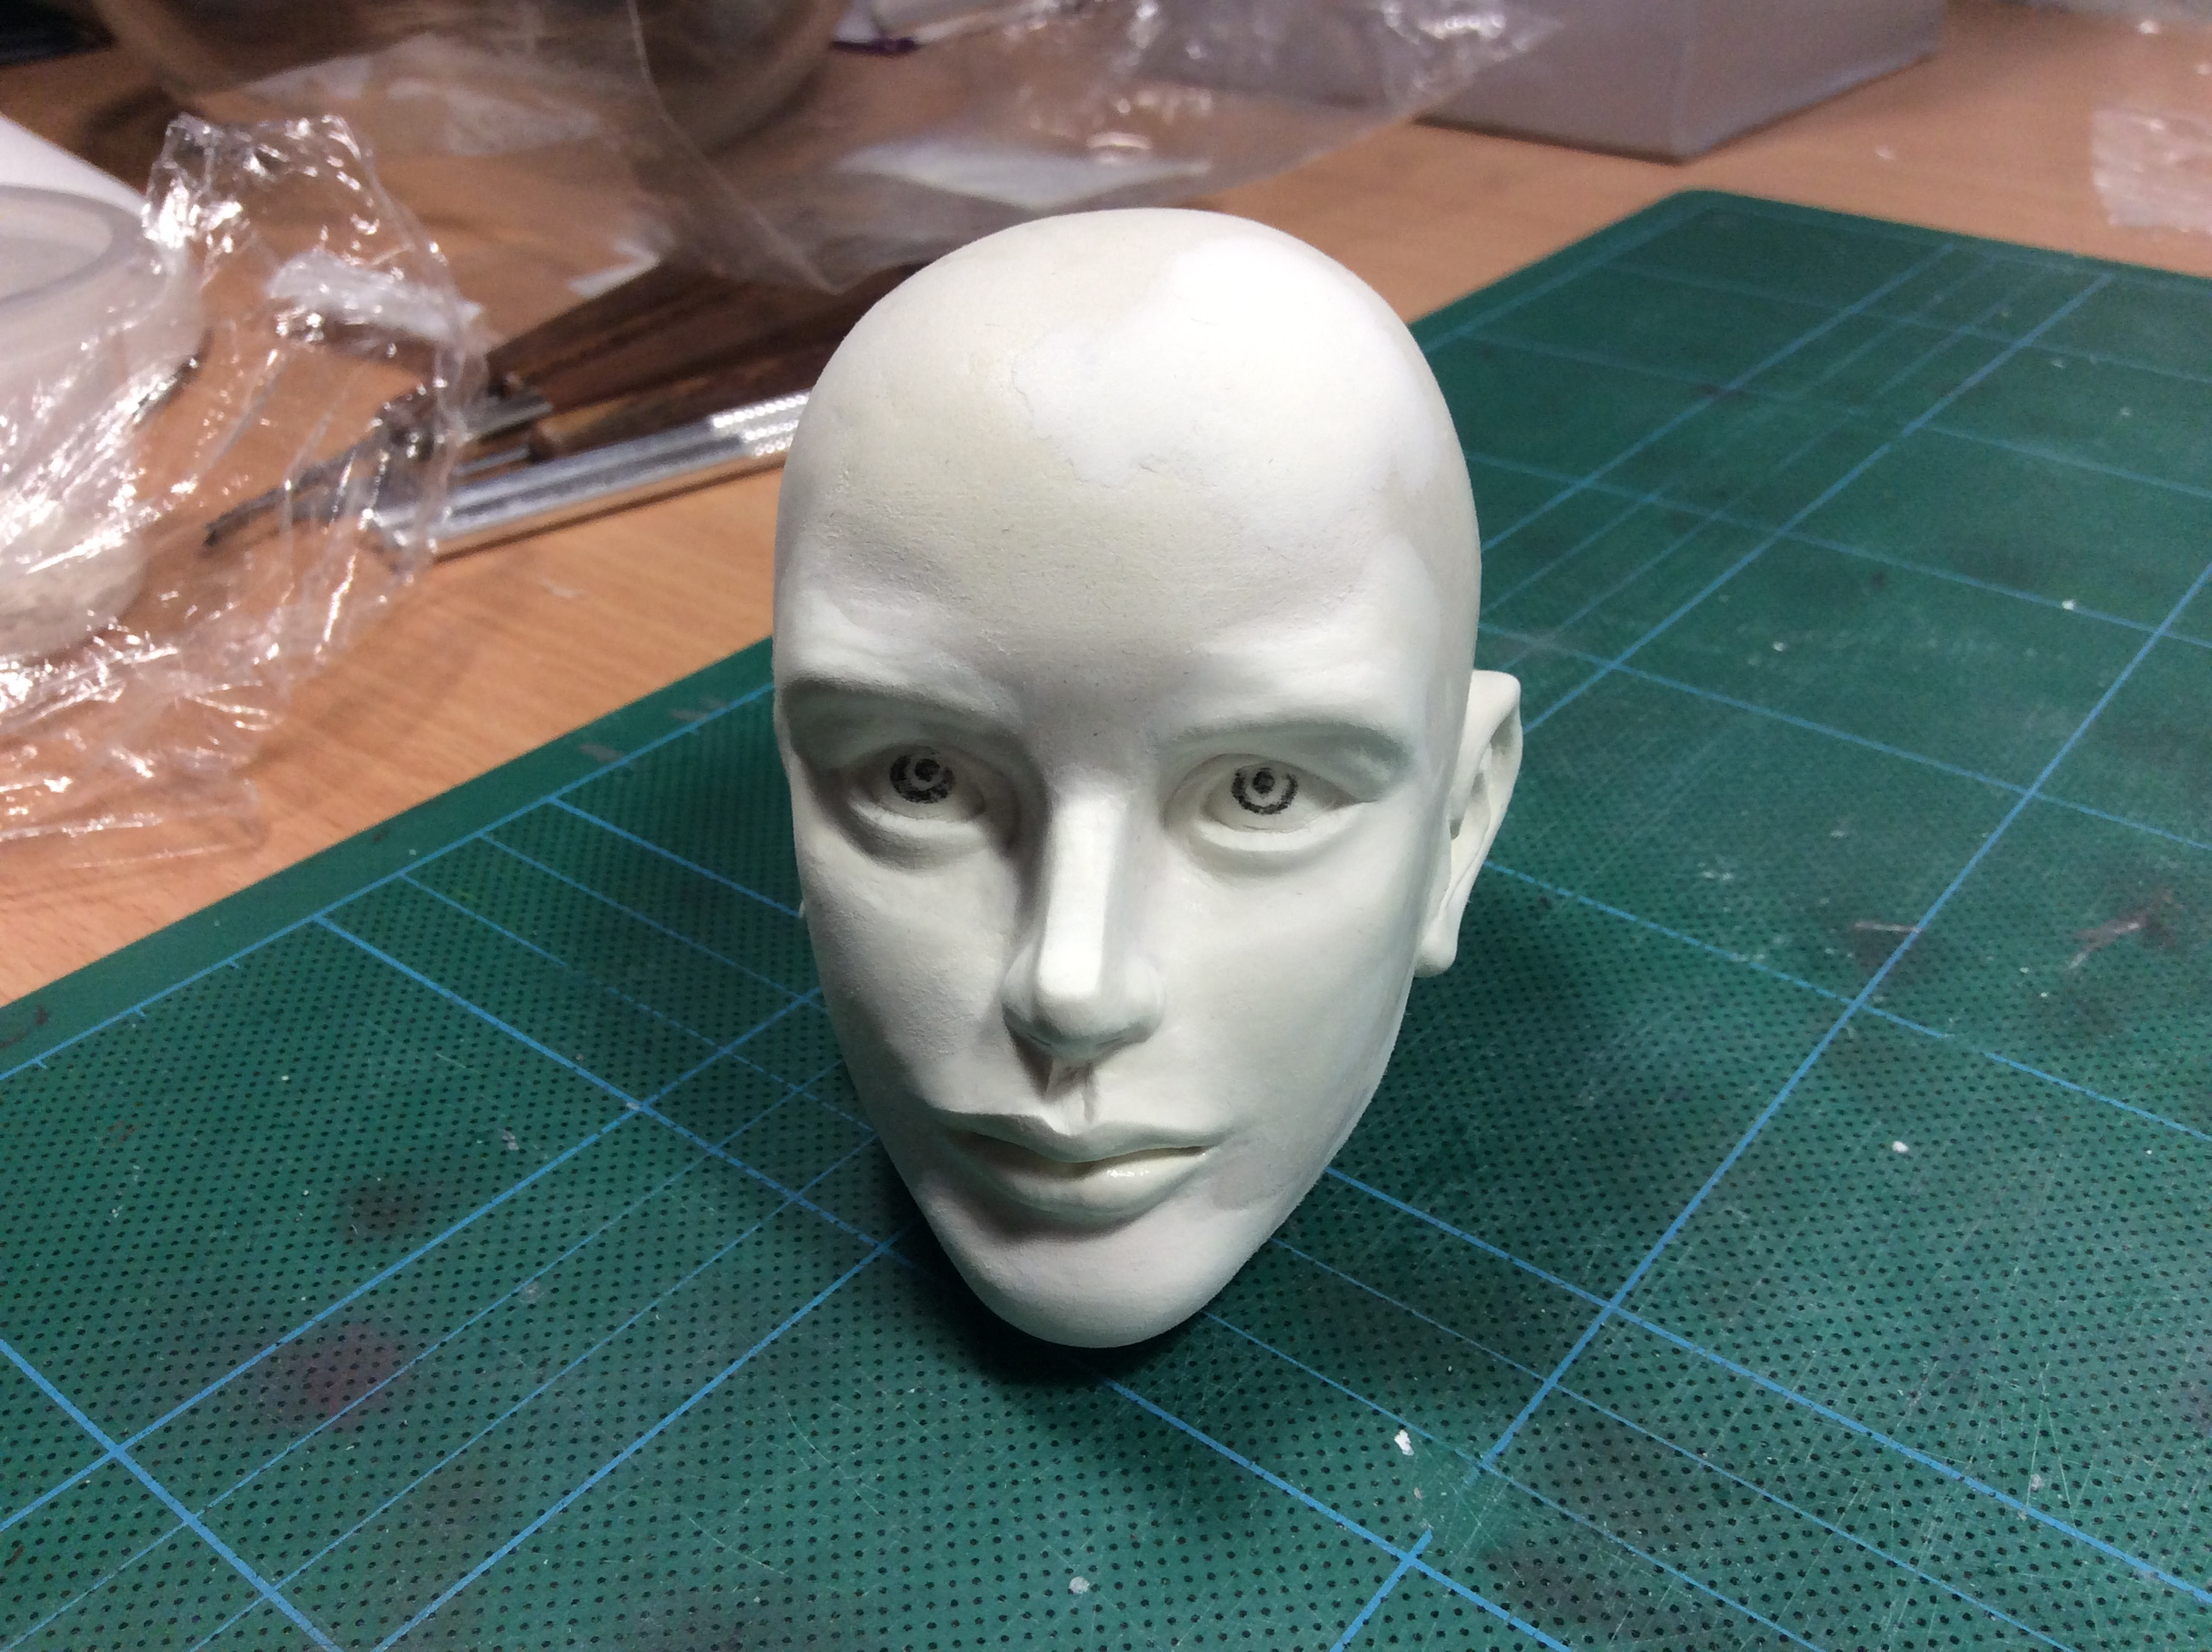 jemse---my-first-doll-head-making-progress-diary-part-4_32426506445_o